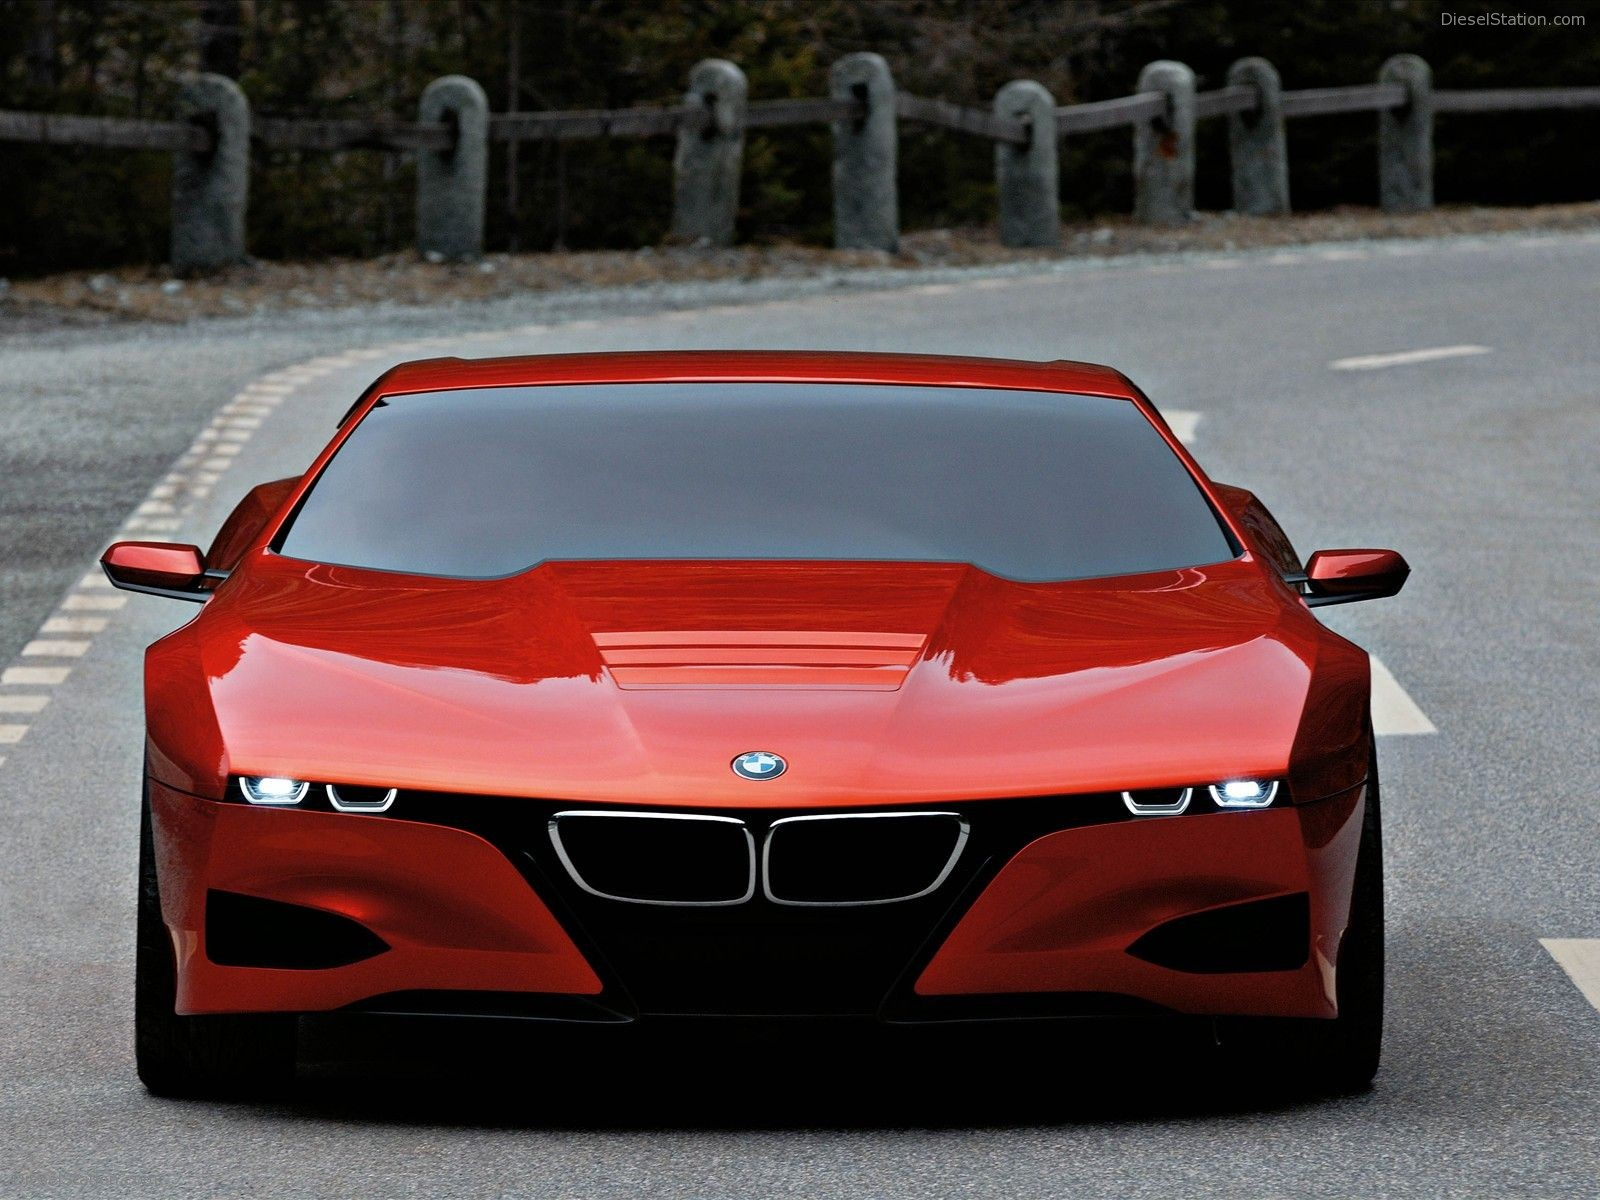 Bmw M1 Hommage Spiritual Precursor To The I8